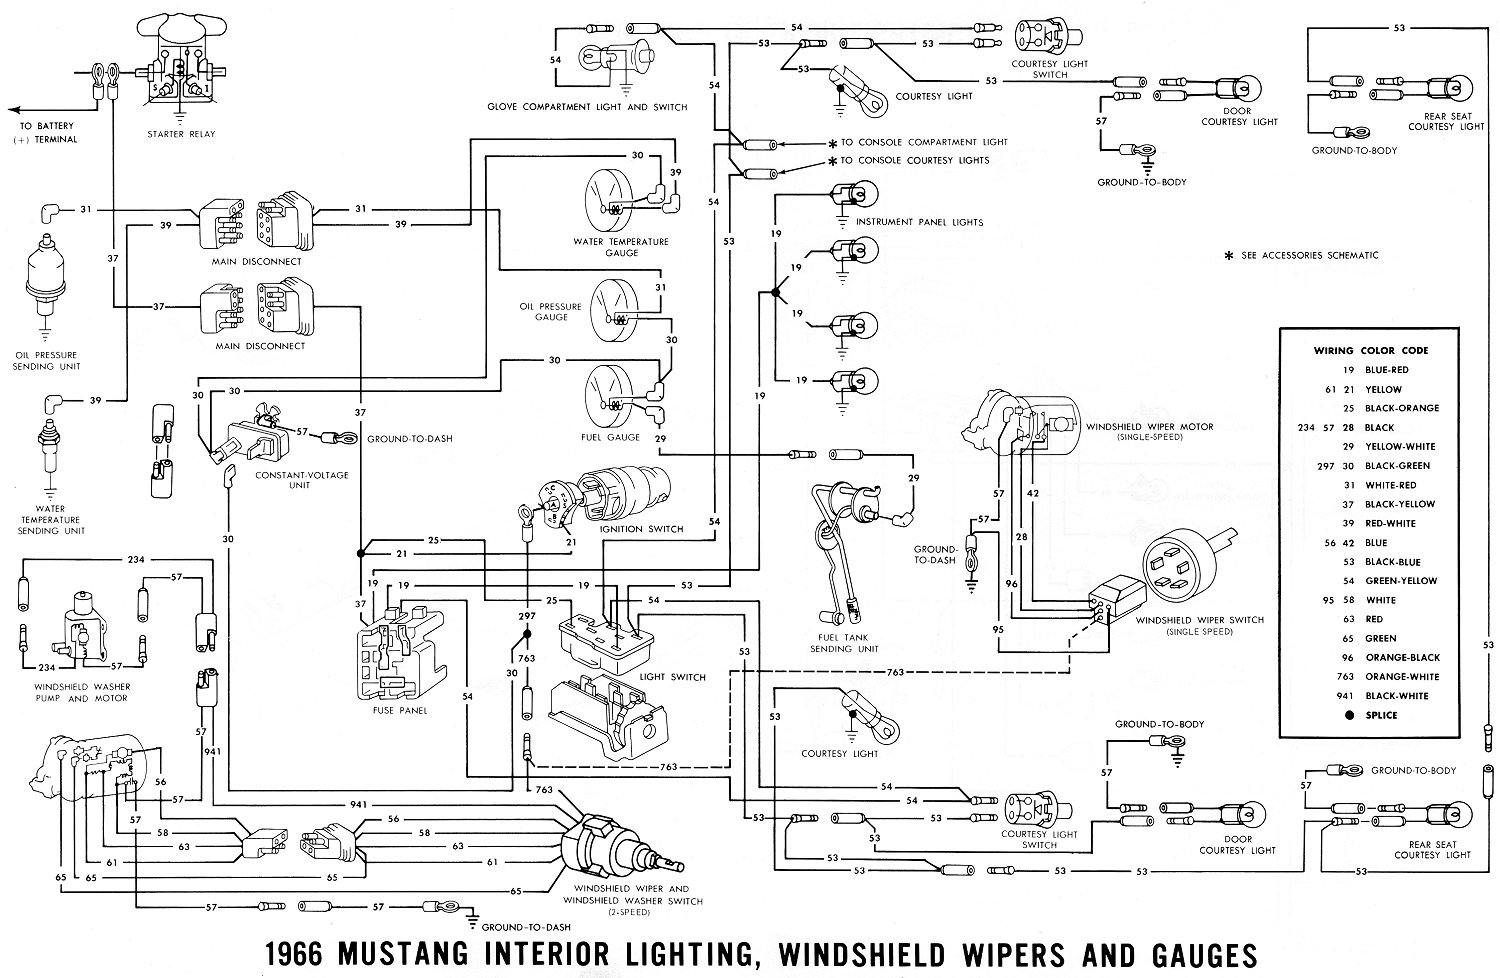 66 mustang wiring harness diagram 1969 mustang ignition wiring 1966 mustang wiring diagrams average joe restoration 66 mustang wiring harness diagram 66 mustang wiring harness sciox Gallery